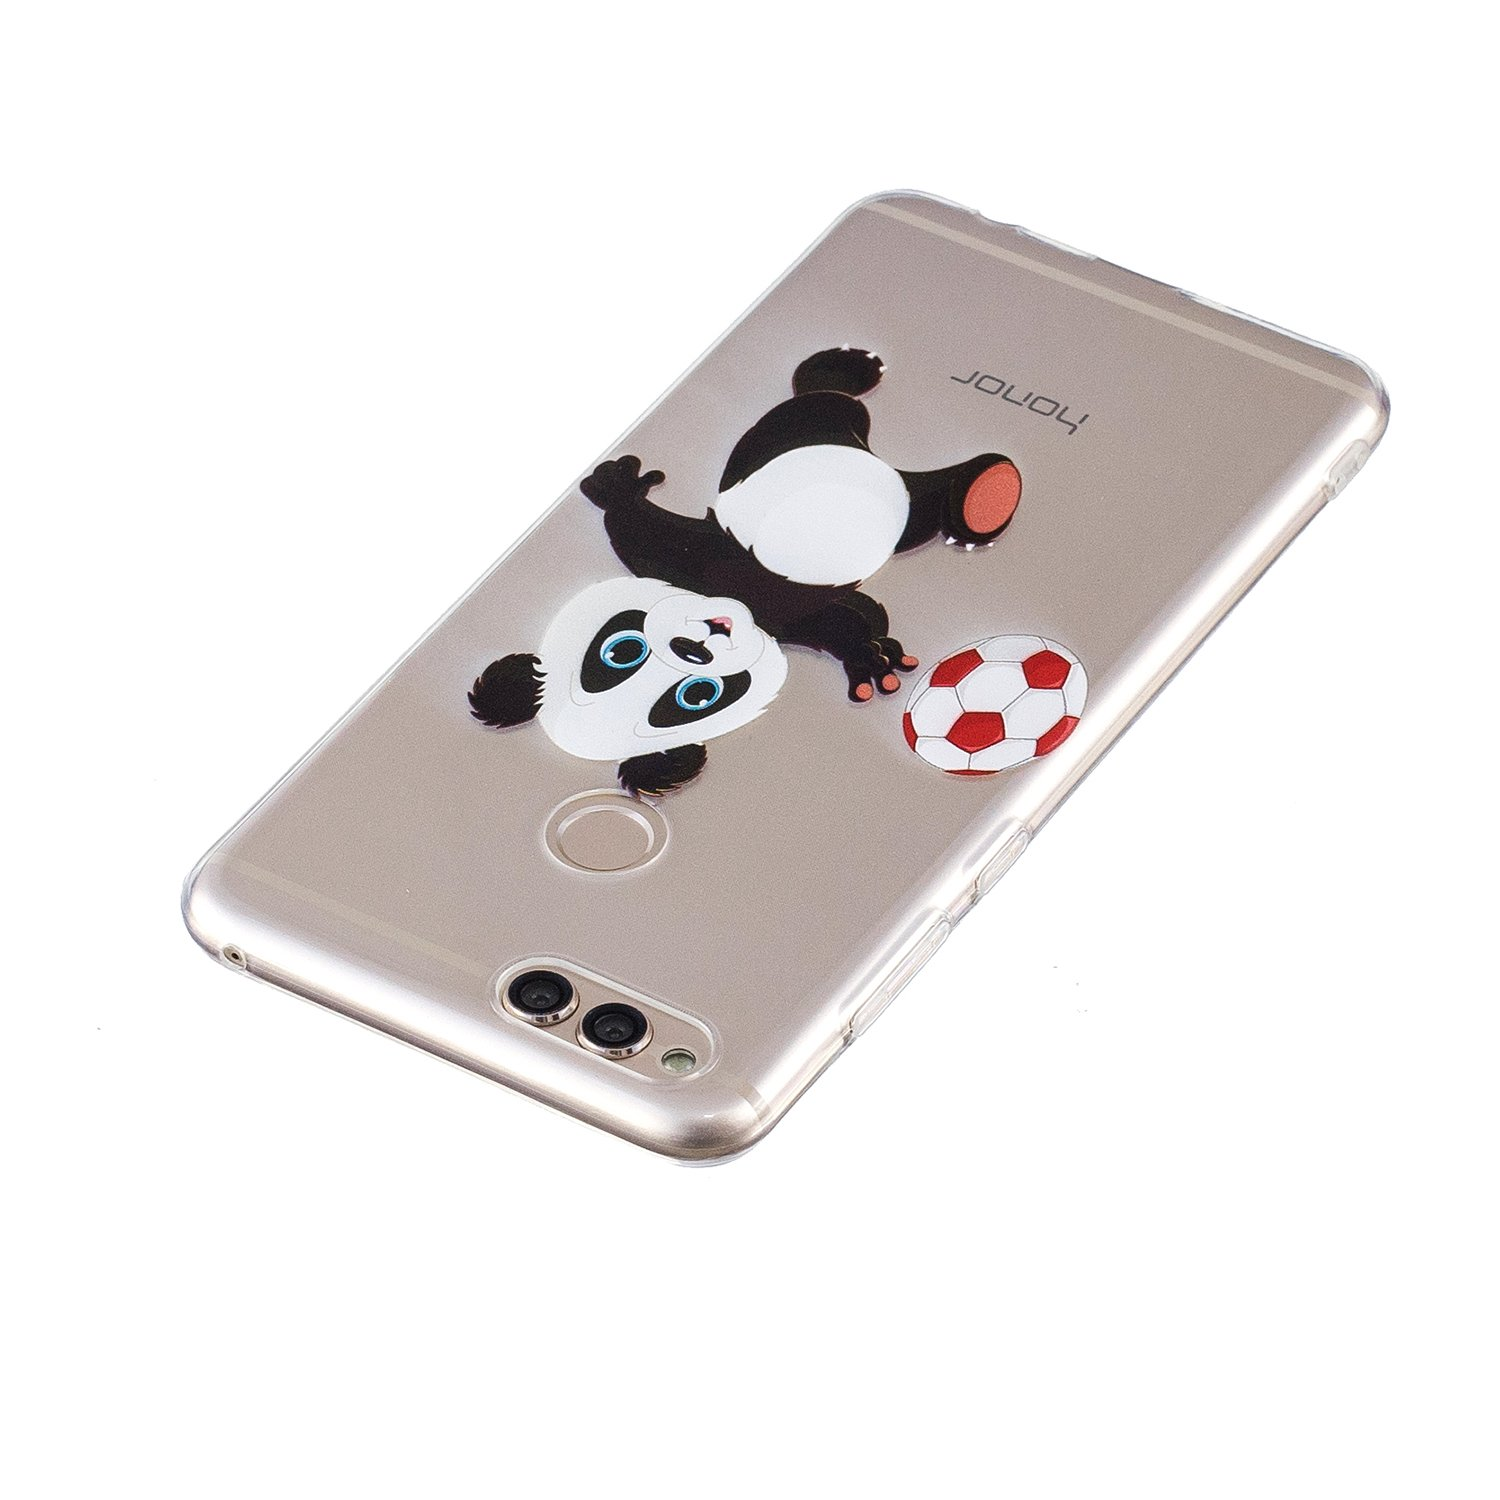 Coque Huawei Y5 2017 Y6 2017 YYX Huawei Y5 2017 Housse Etui Ultra Mince TPU Silicone Coque Cristal Transparent Gel Clair Silicone Back Cover Bonjour panda